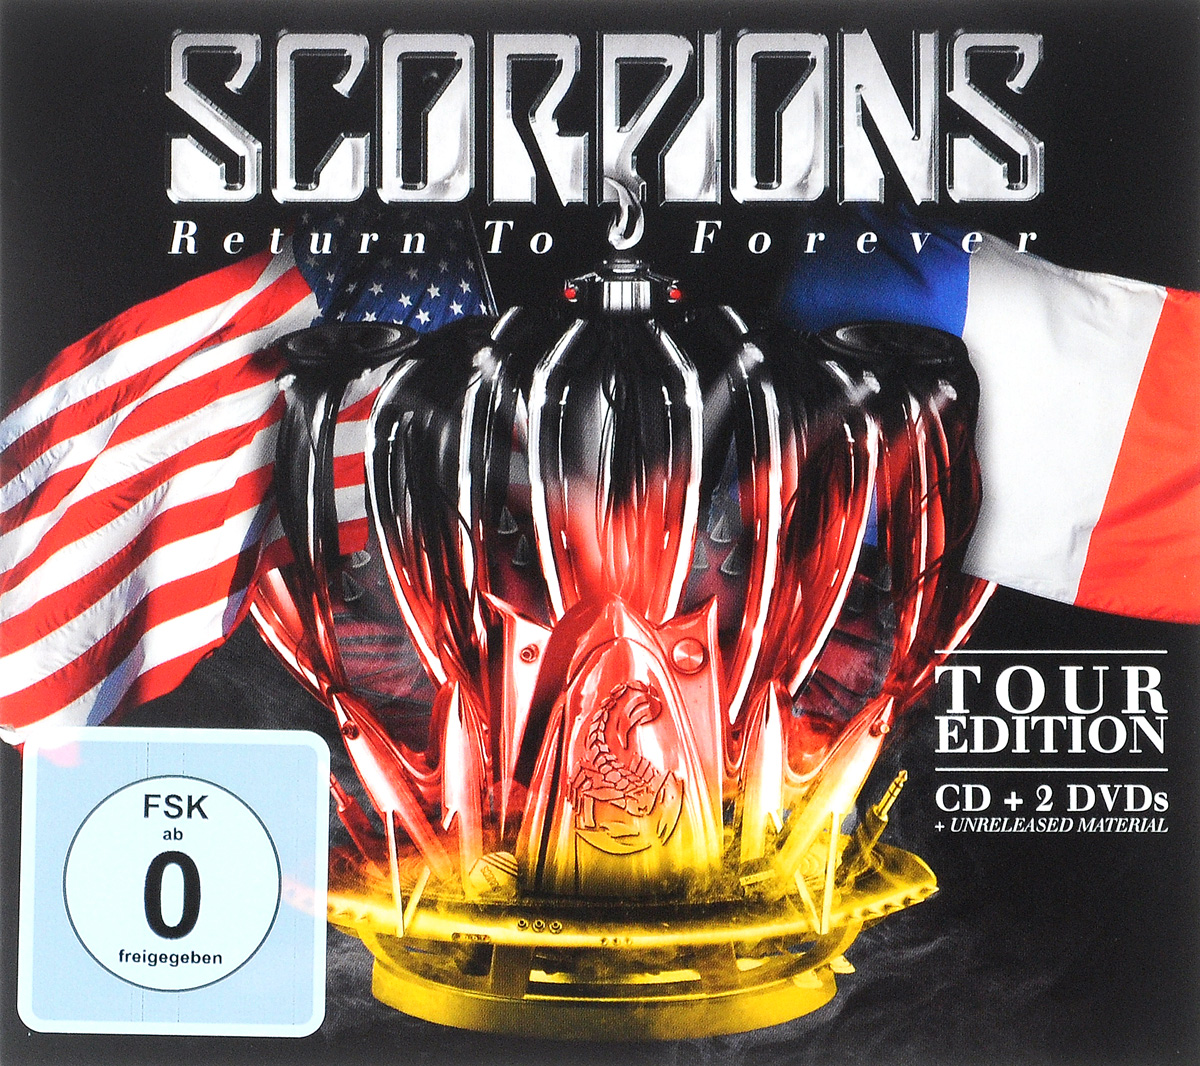 Scorpions Scorpions. Return To Forever. Tour Edition (CD + 2 DVD) scorpions – born to touch your feelings best of rock ballads cd